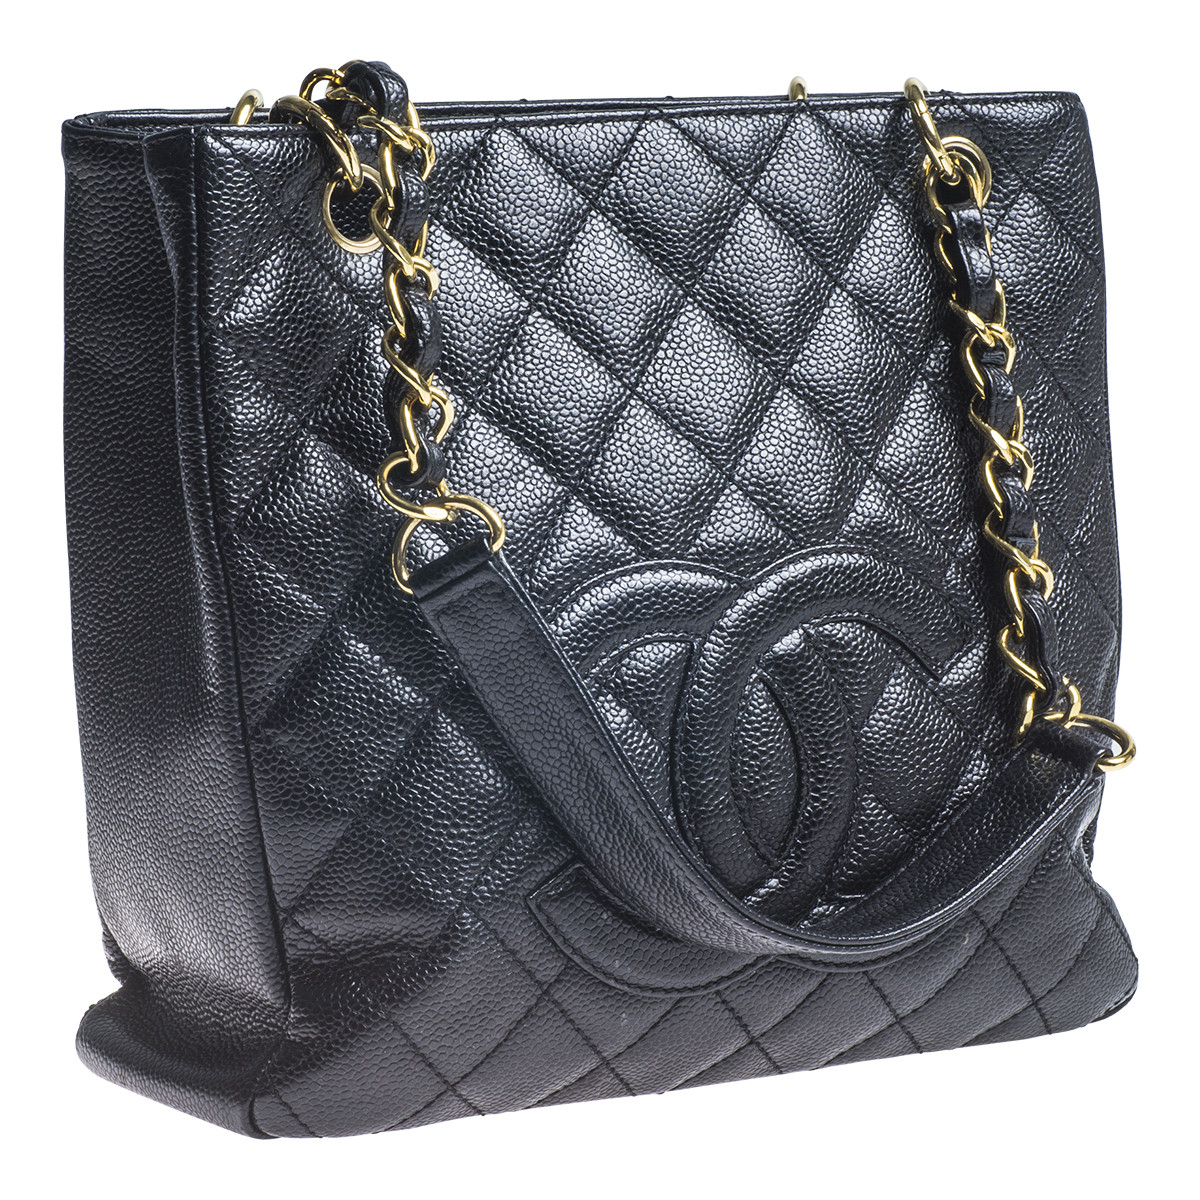 Vintage Chanel Black Leather Quilted Caviar Tote Bag